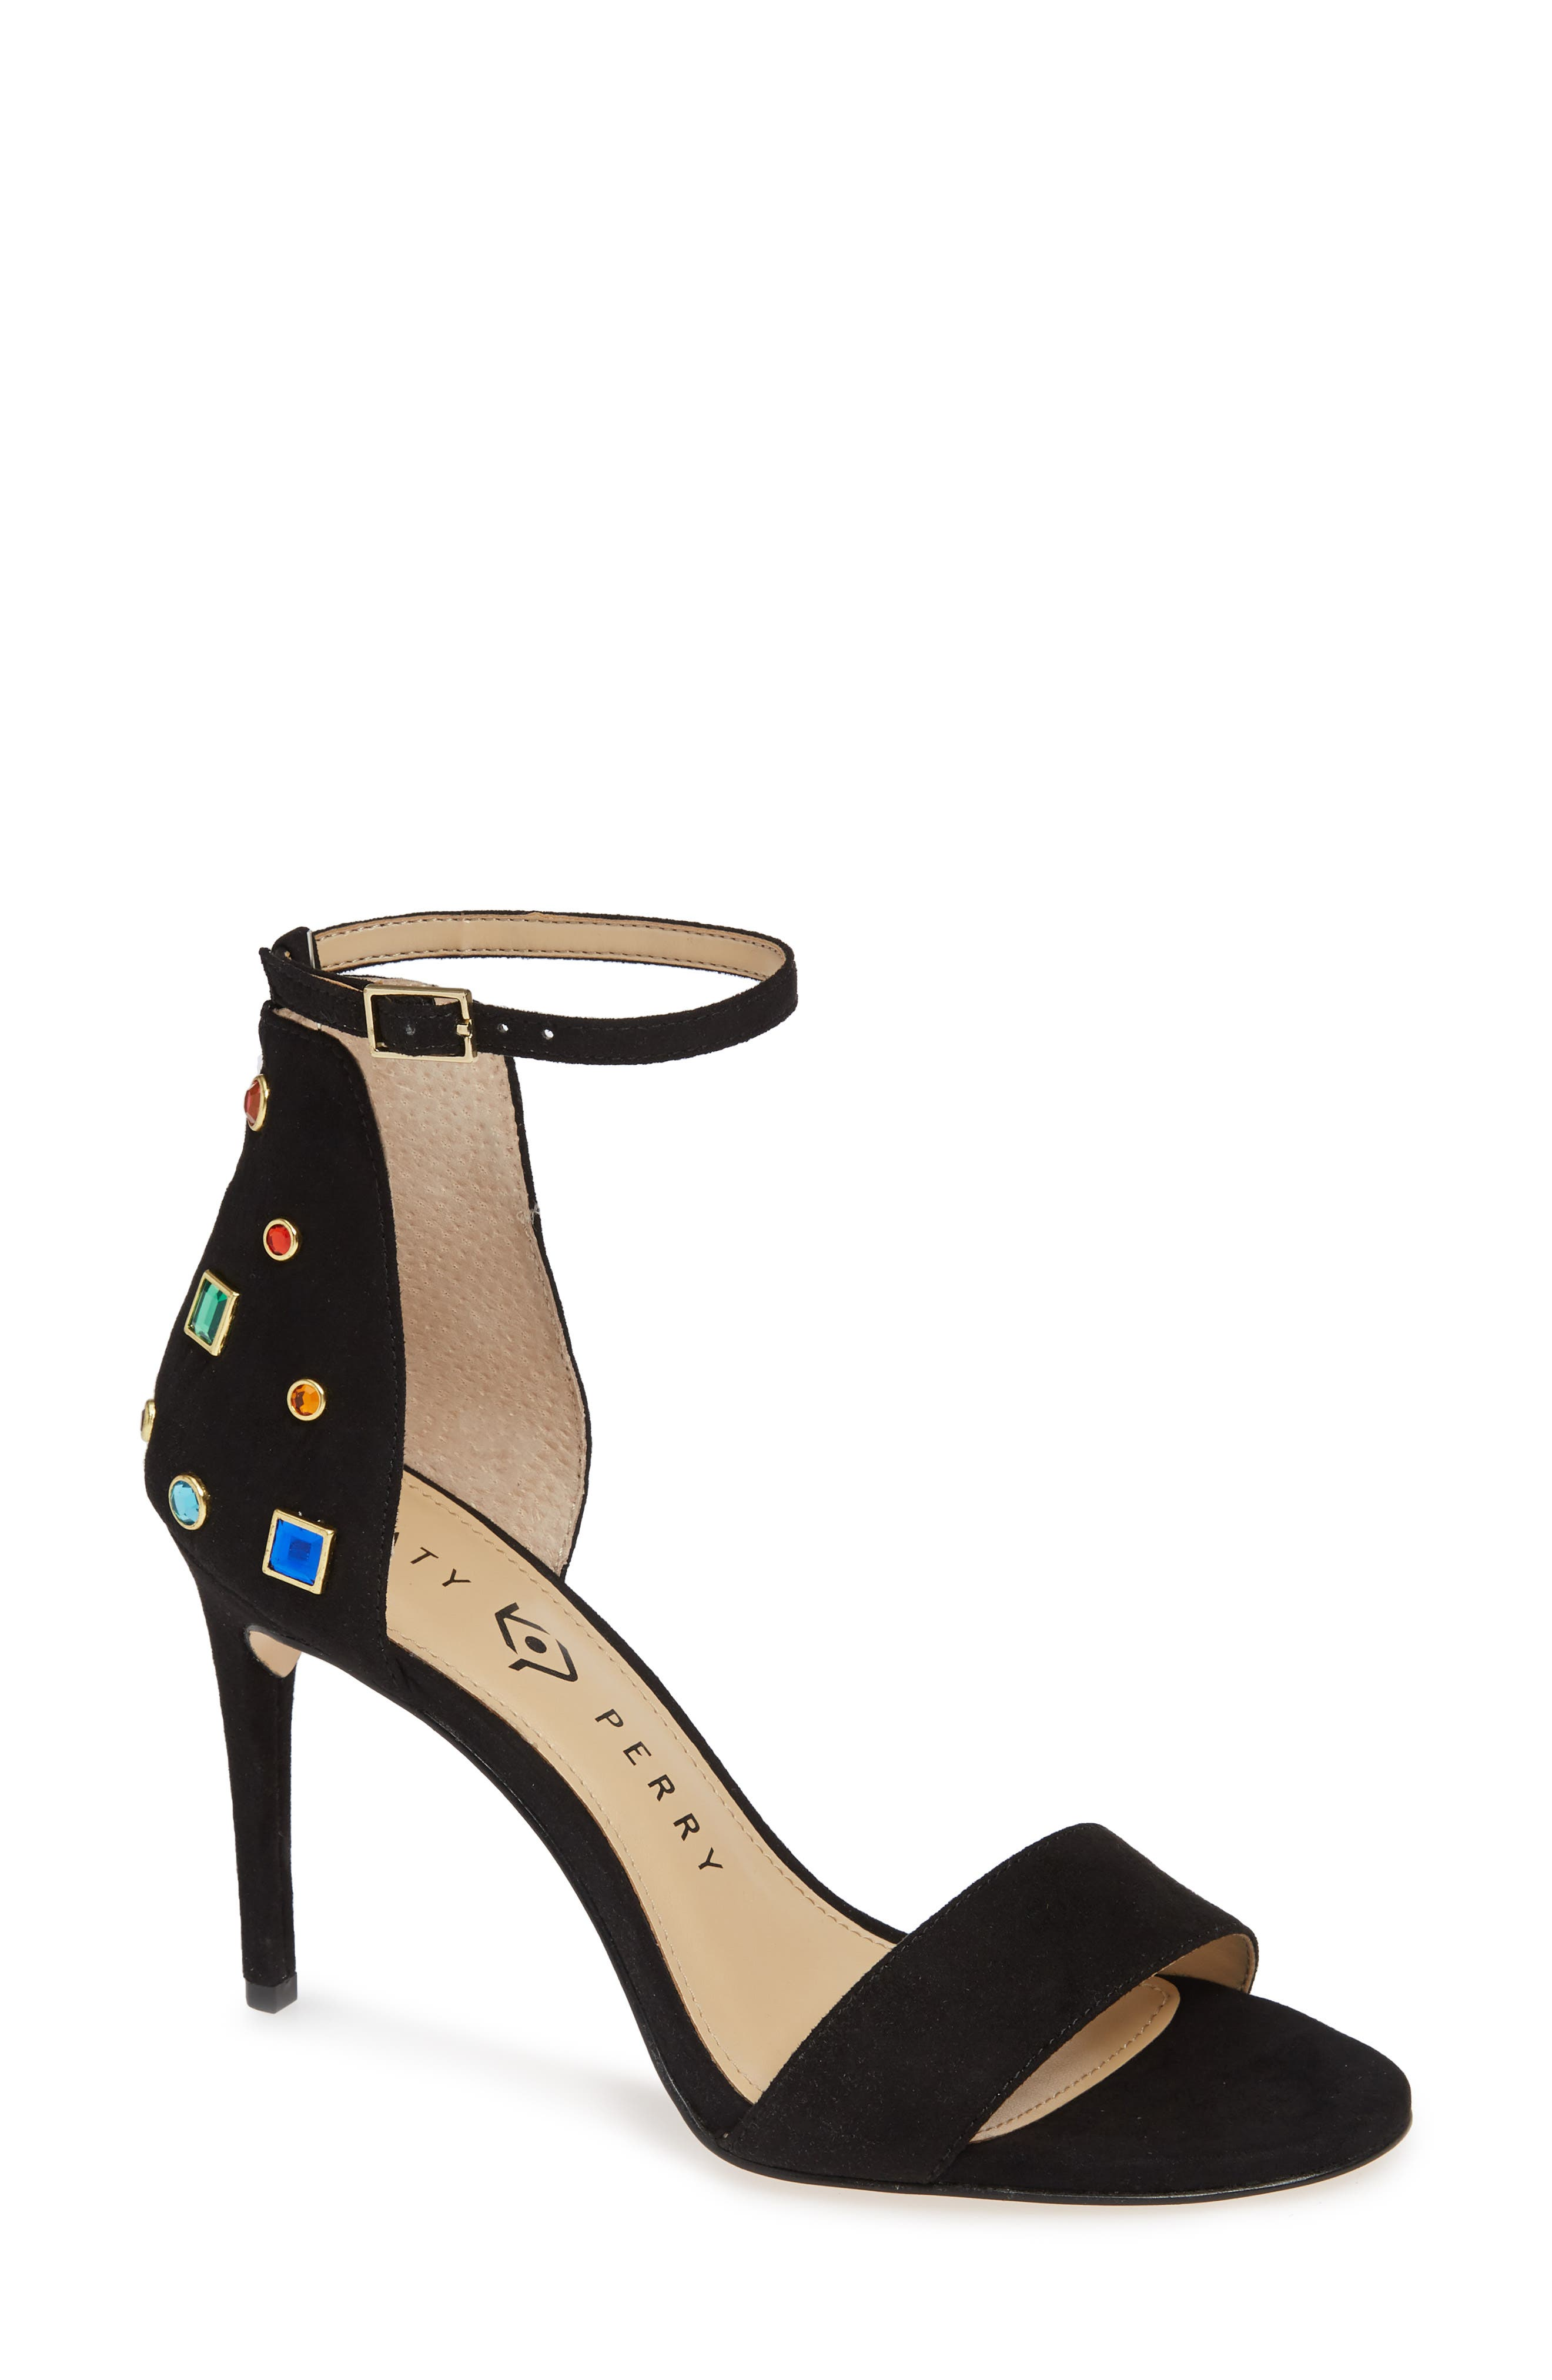 KATY PERRY Jewel Ankle Strap Sandal, Main, color, 001